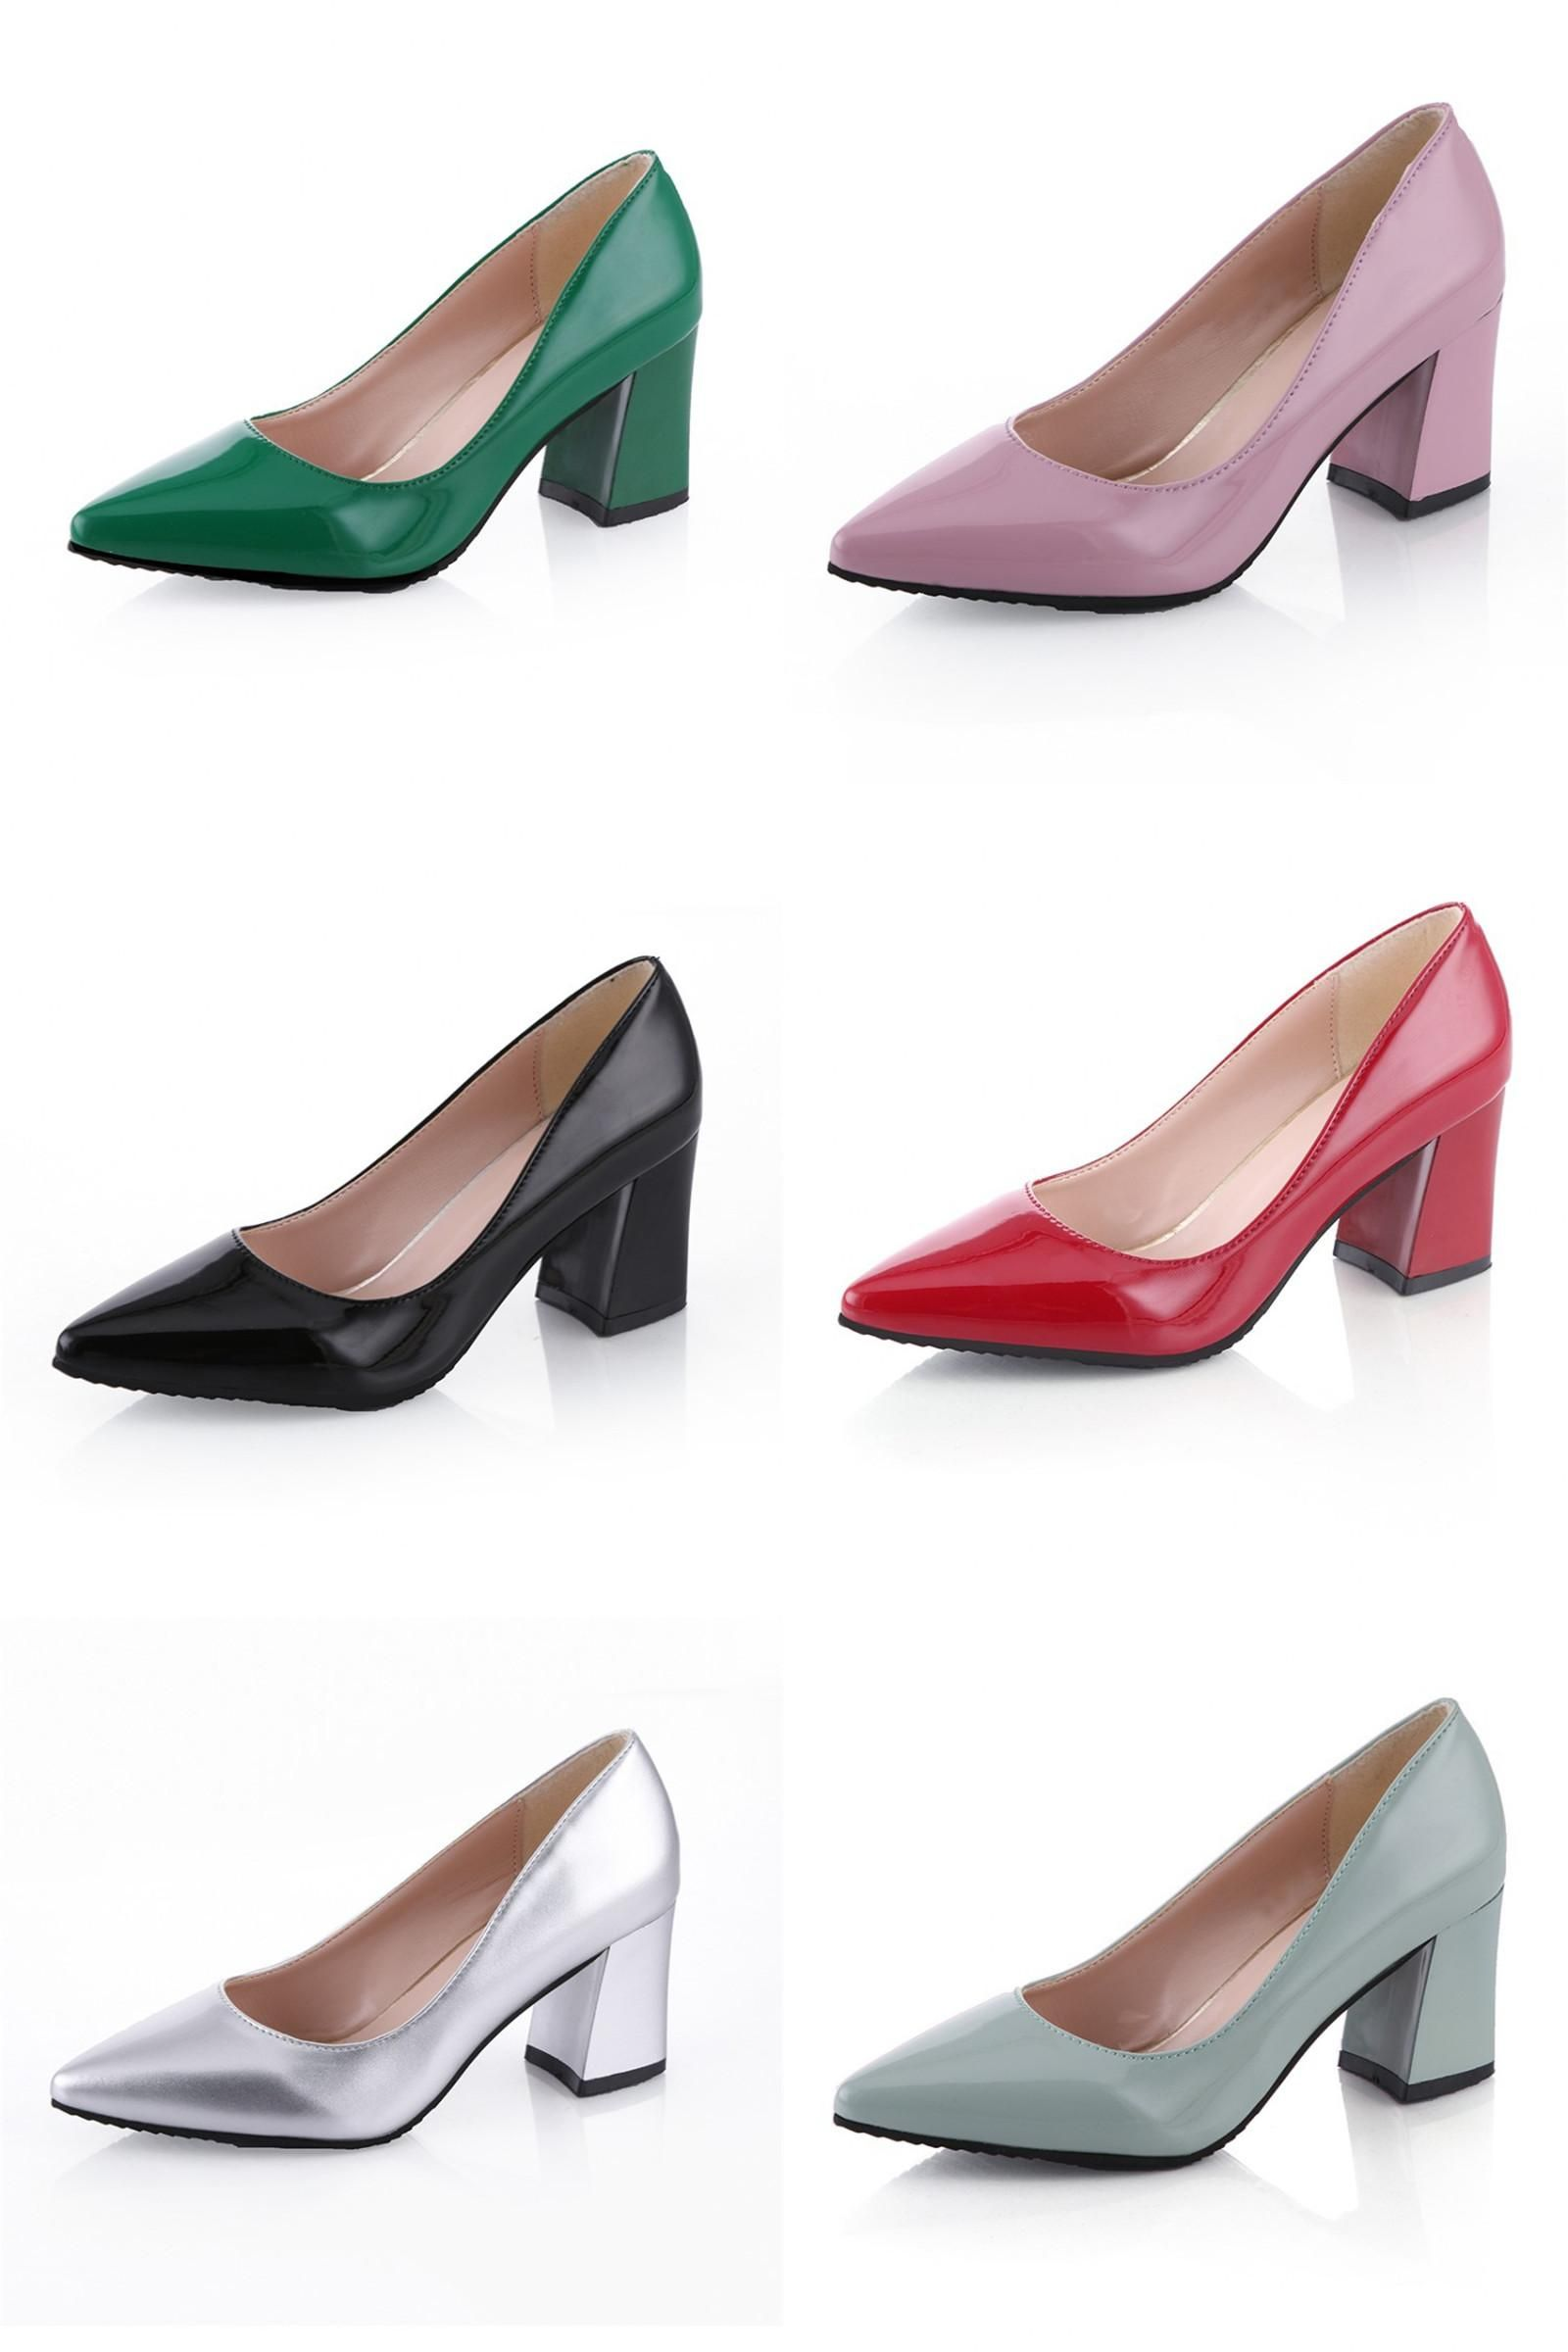 of high office comforter heel fashion gary is the comfortable platform heeled ladies shoes height